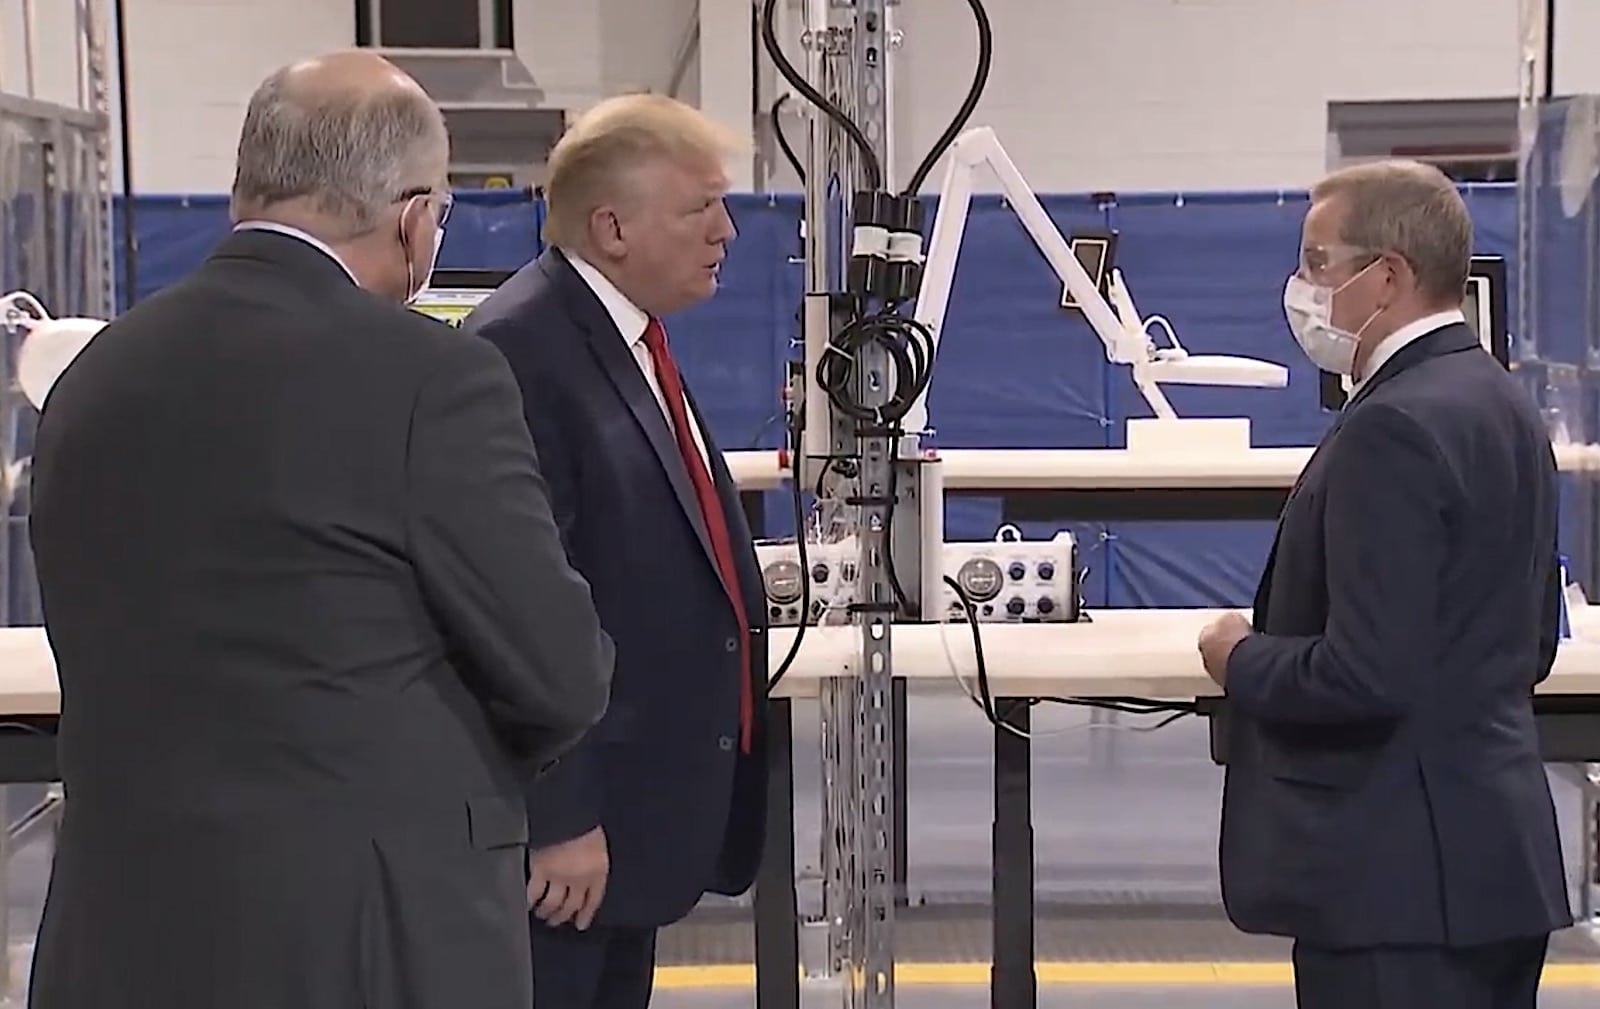 Trump meets with African American leaders ahead of Michigan Ford tour